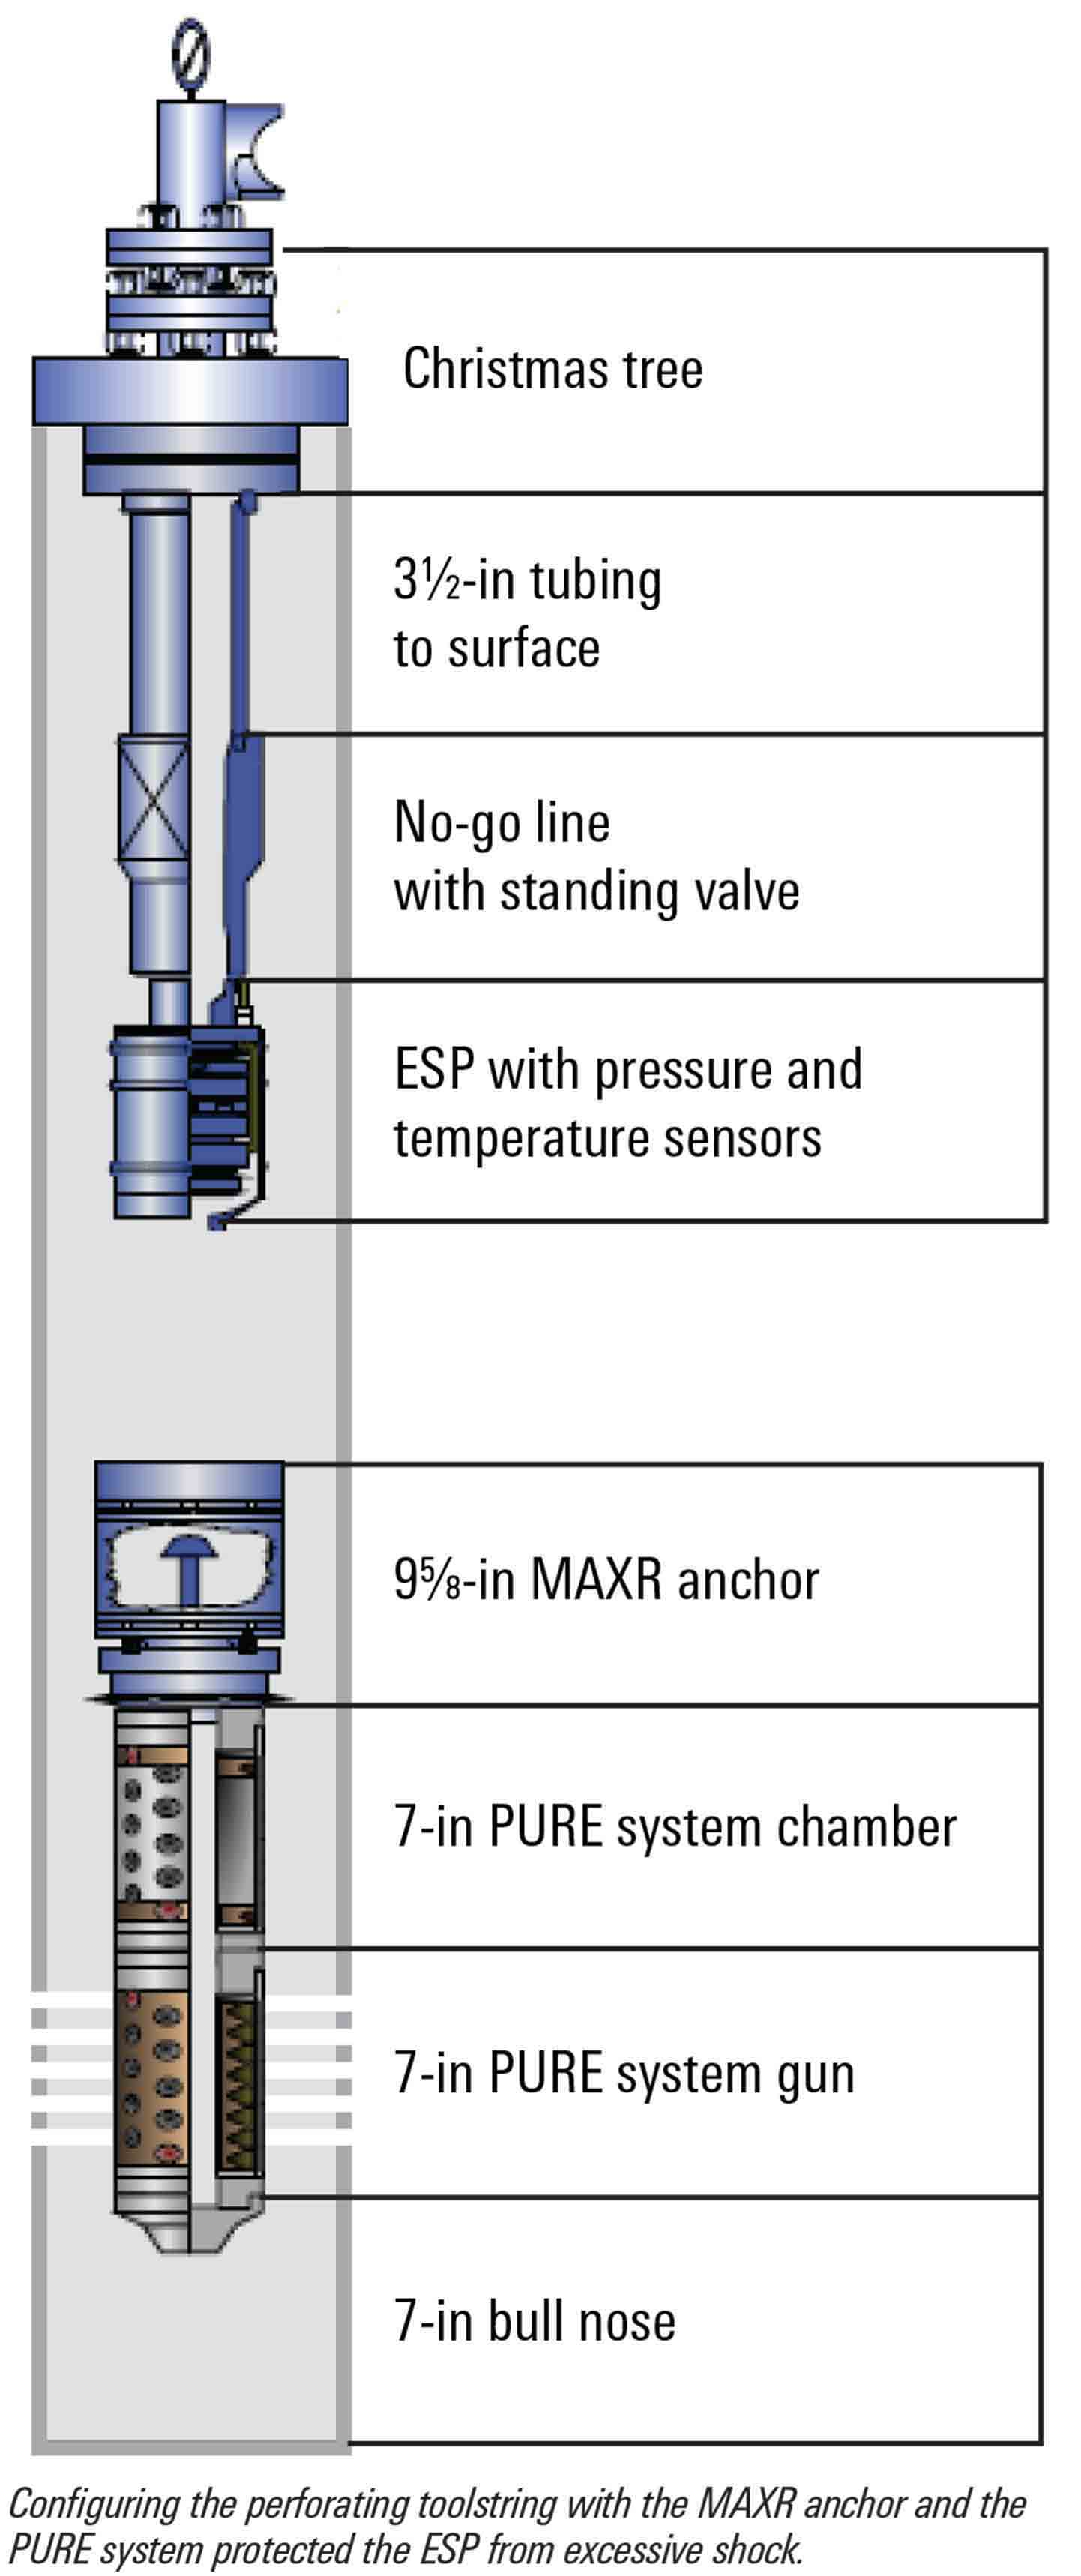 Configuring the perforating toolstring with the MAXR anchor and the PURE system protected the ESP from excessive shock.